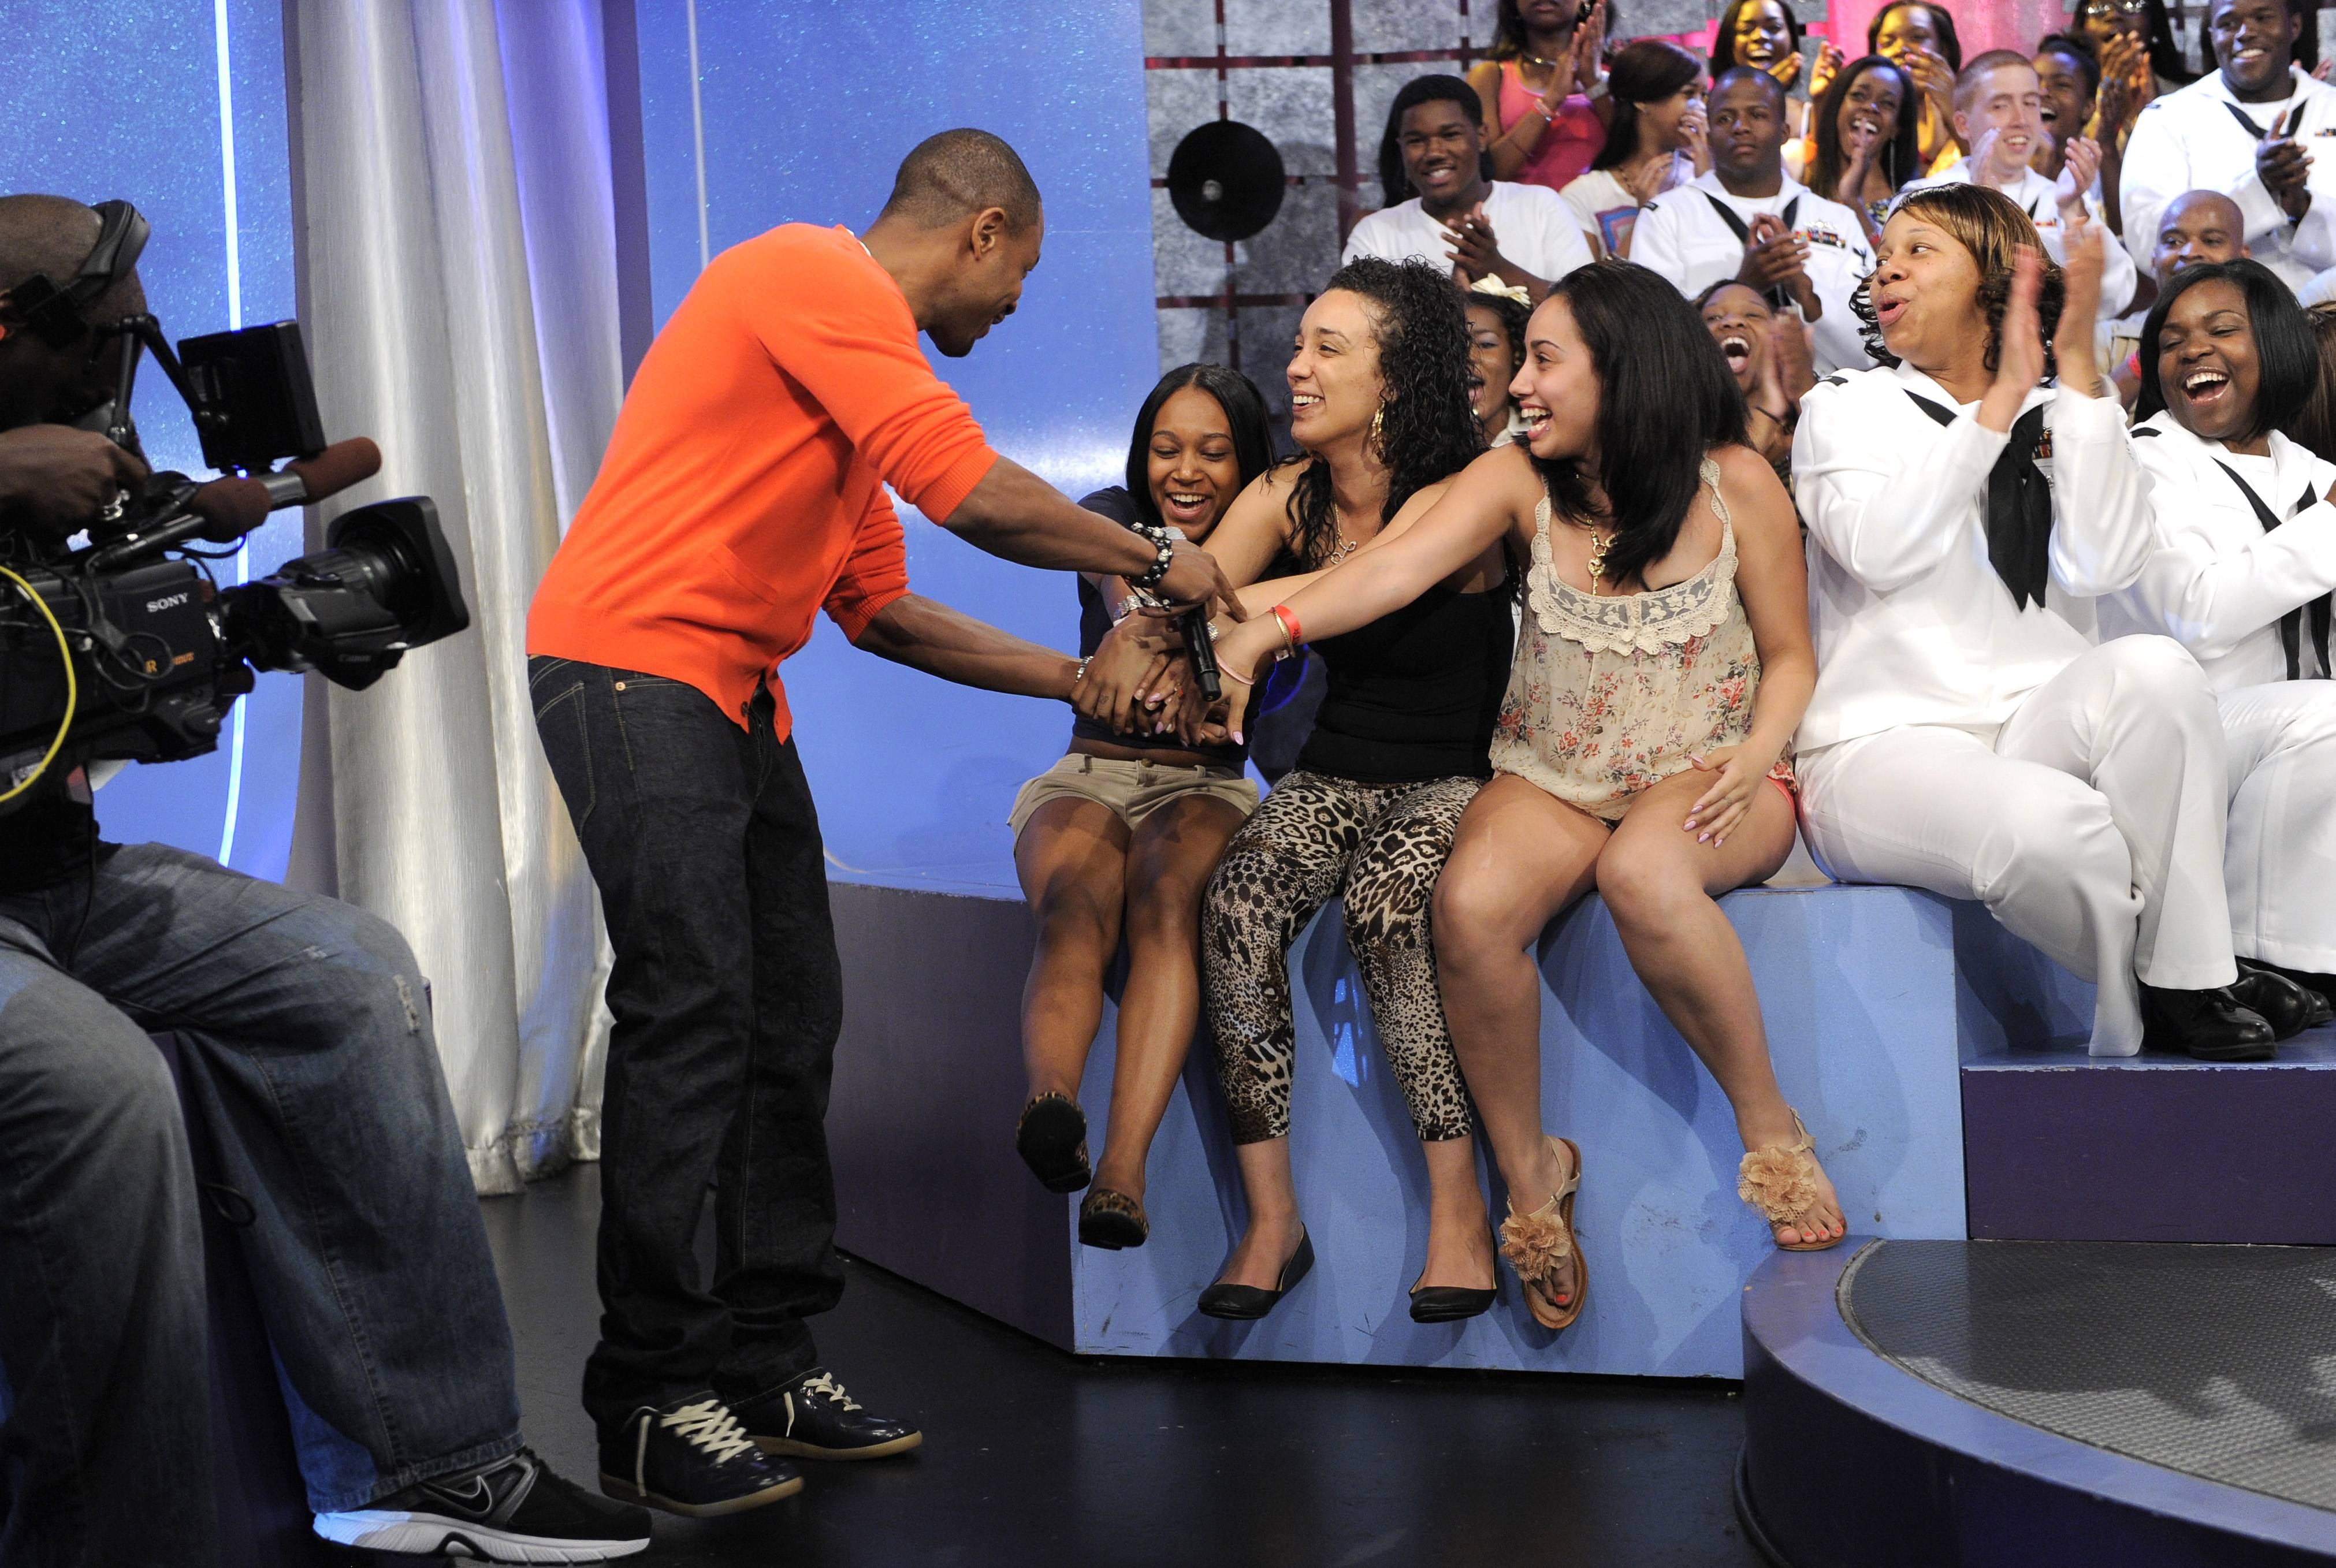 Here's Tank - Tank takes the stage at106 & Park, May 29, 2012. (Photo: John Ricard / BET)